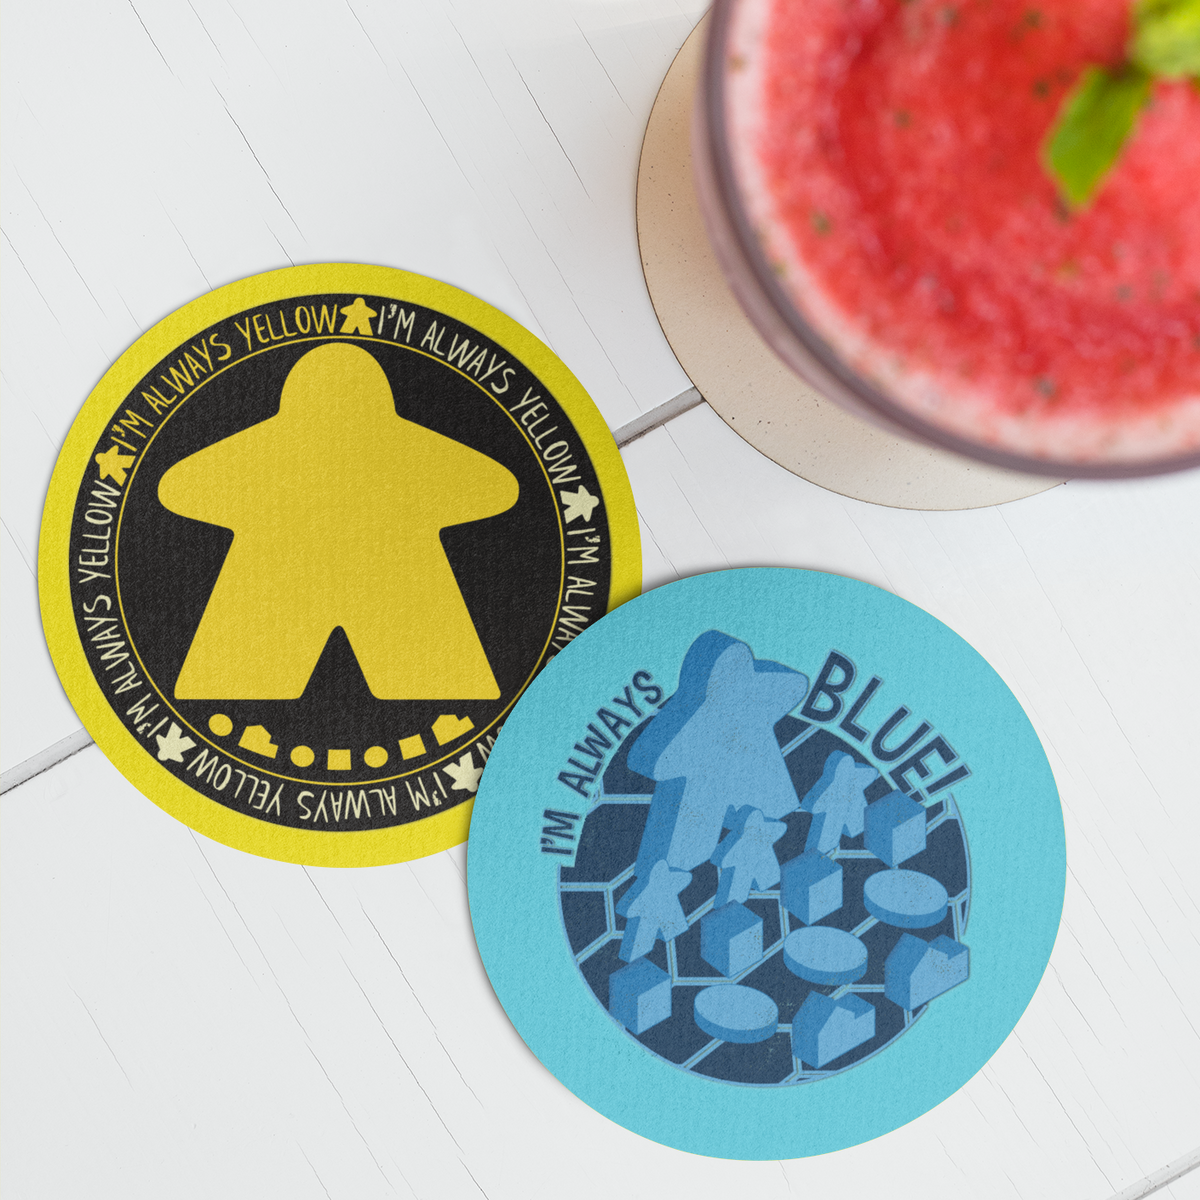 I'm Always Colors Meeple Board Game Coaster